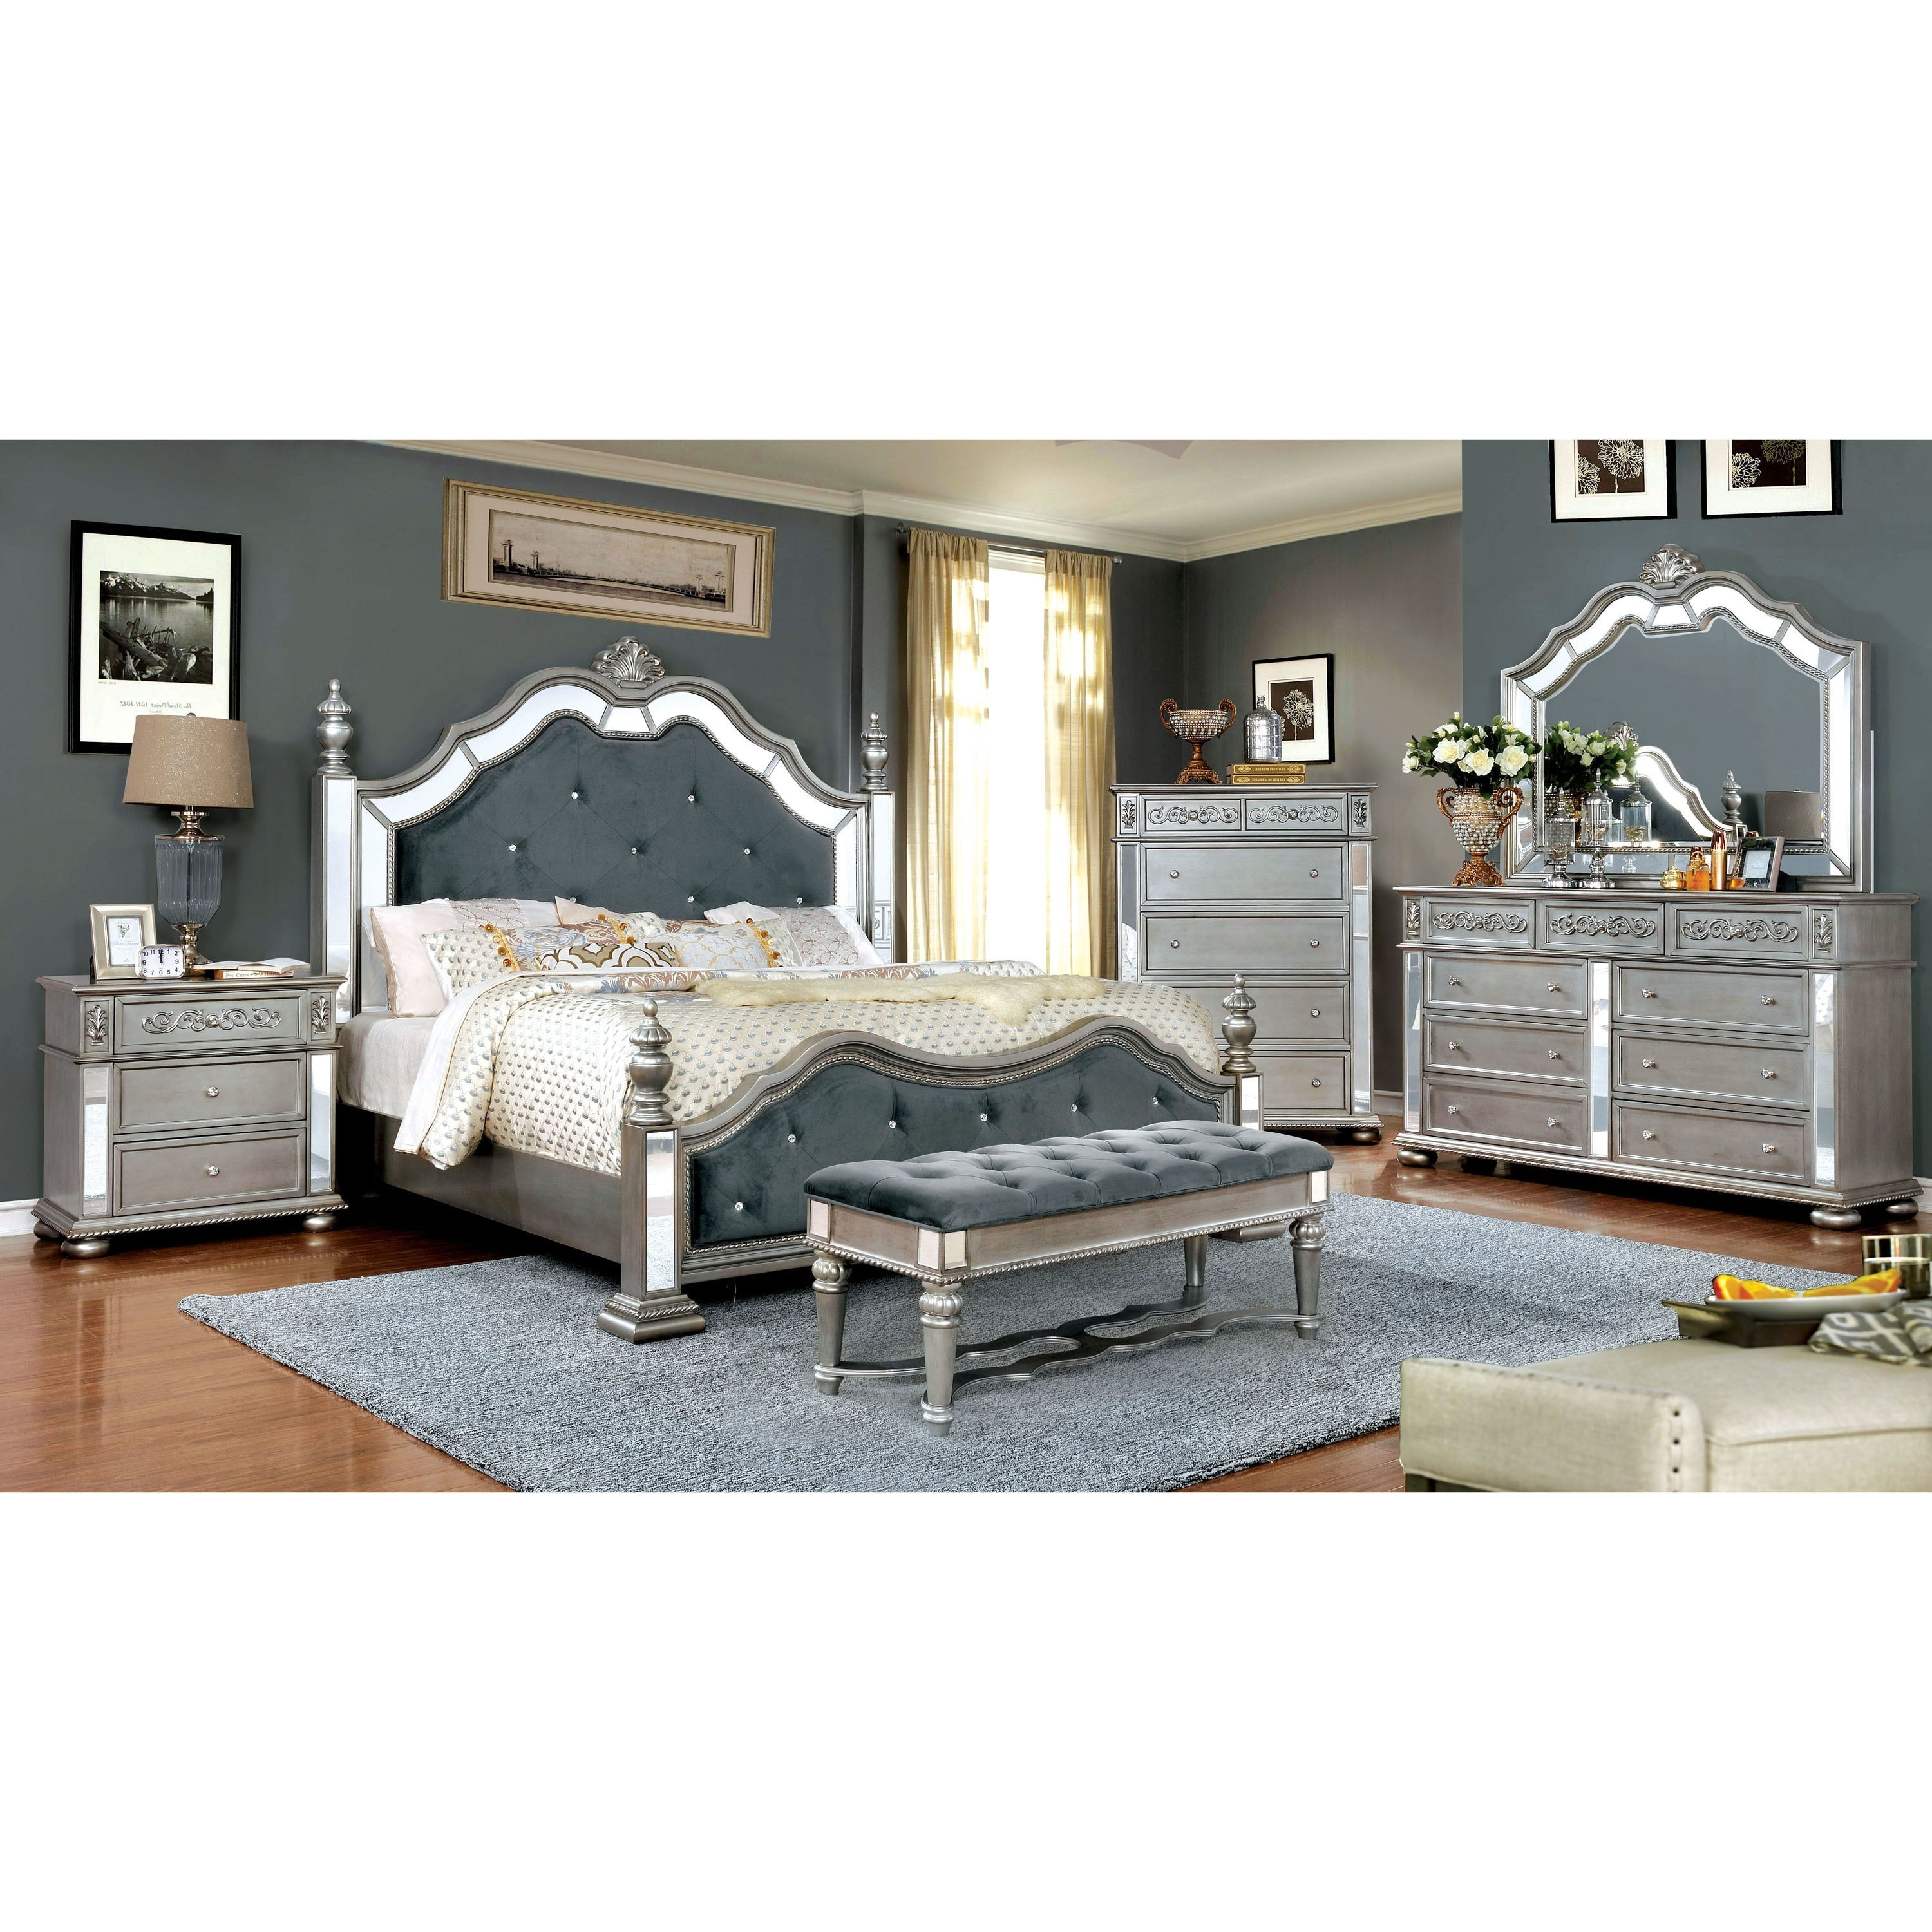 Trending Bedroom Designs  June, 2018